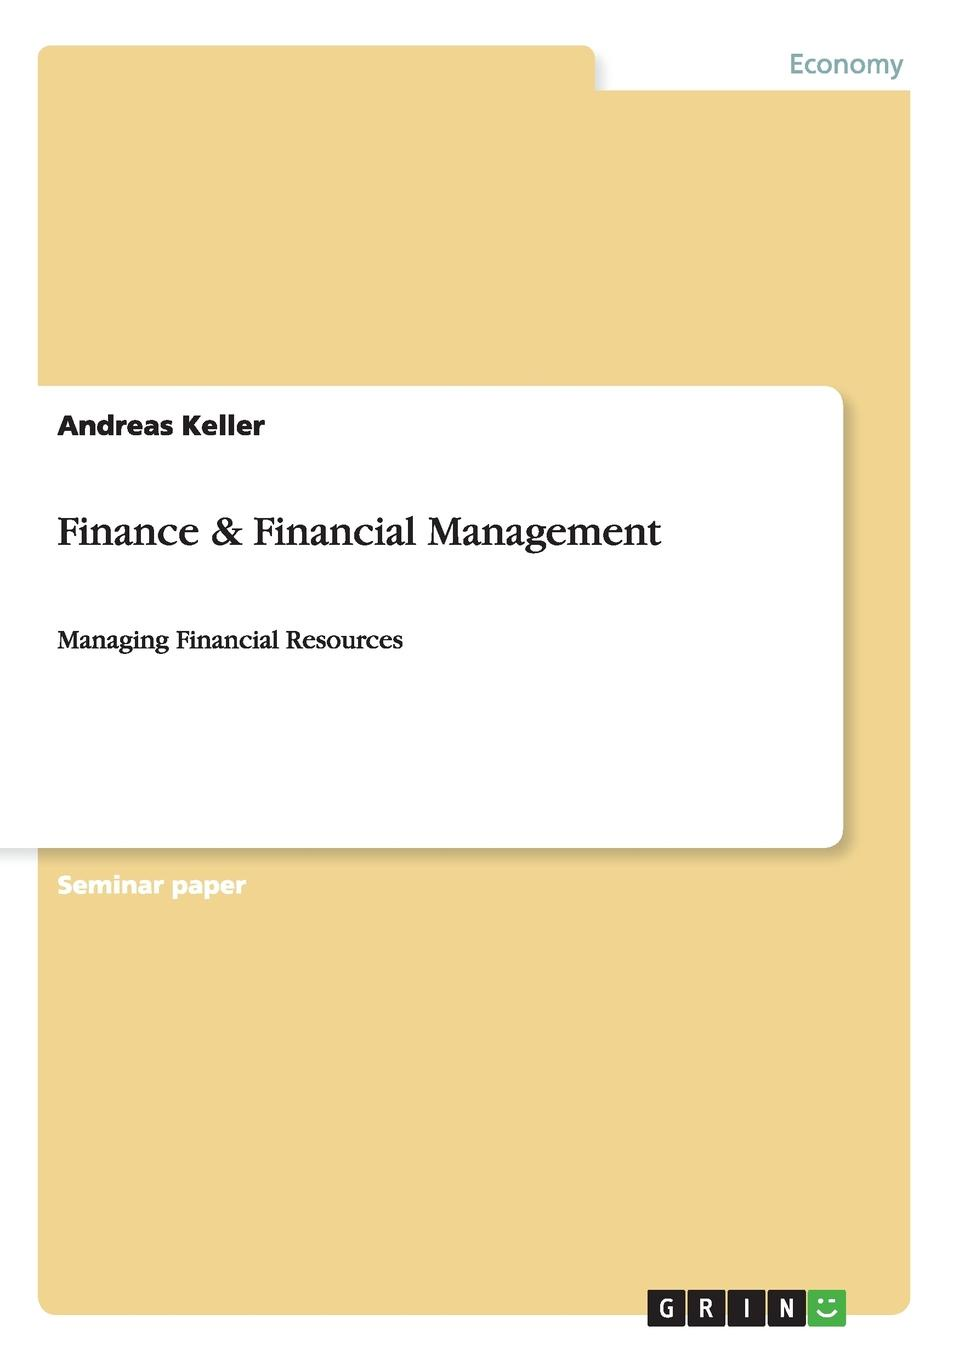 Andreas Keller Finance . Financial Management yamini agarwal capital structure decisions evaluating risk and uncertainty